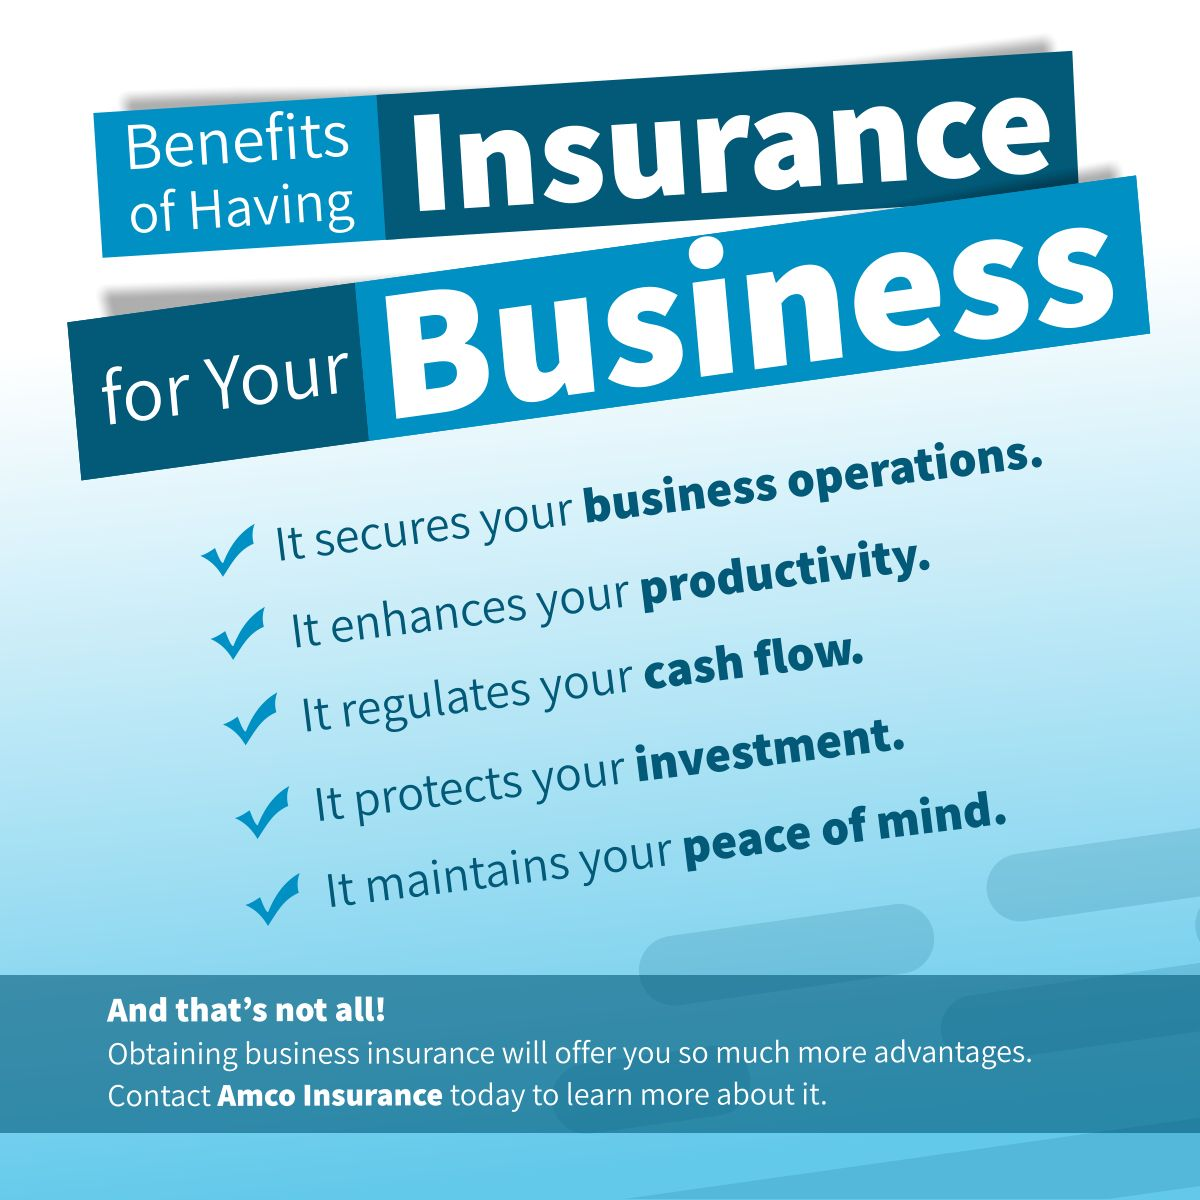 Benefits Of Having Insurance For Your Business